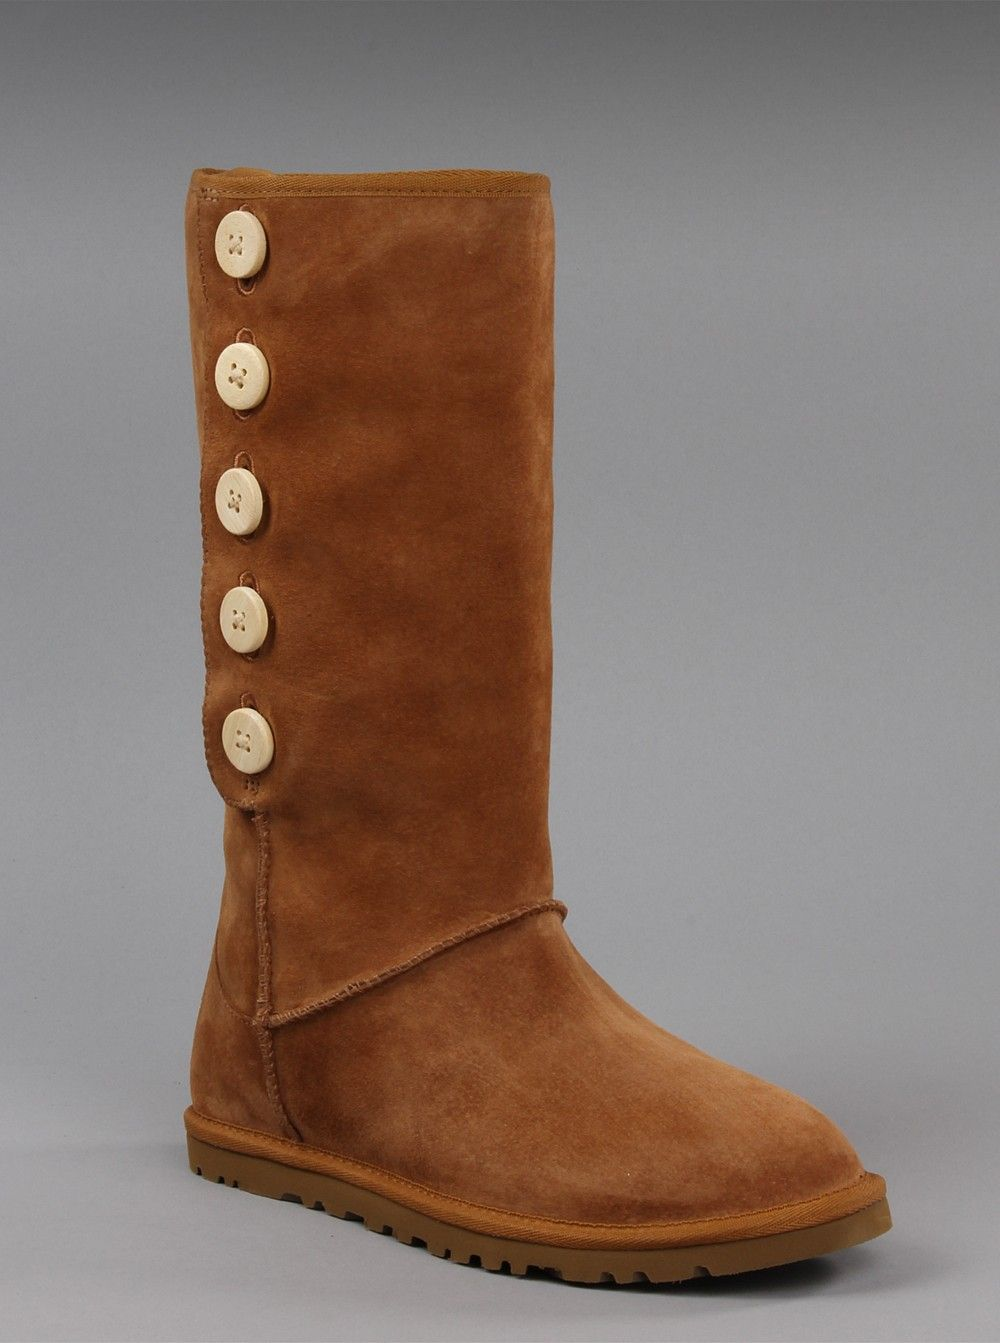 ugg australia womens lo pro suede boot in chestnut stay comfortable rh pinterest com